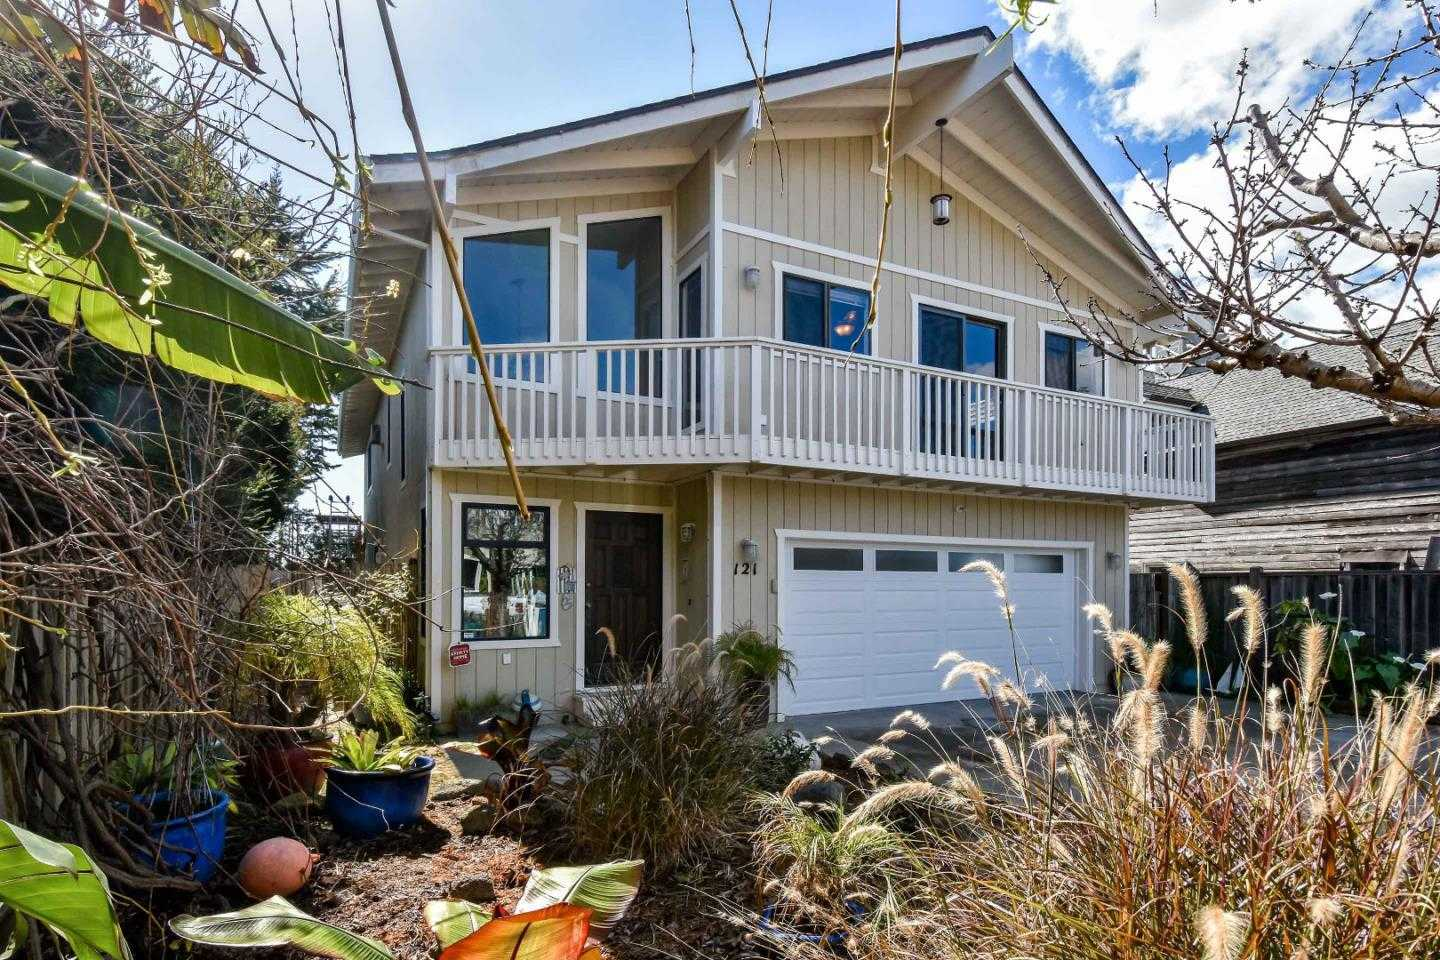 $1,495,000 - 4Br/3Ba -  for Sale in Santa Cruz